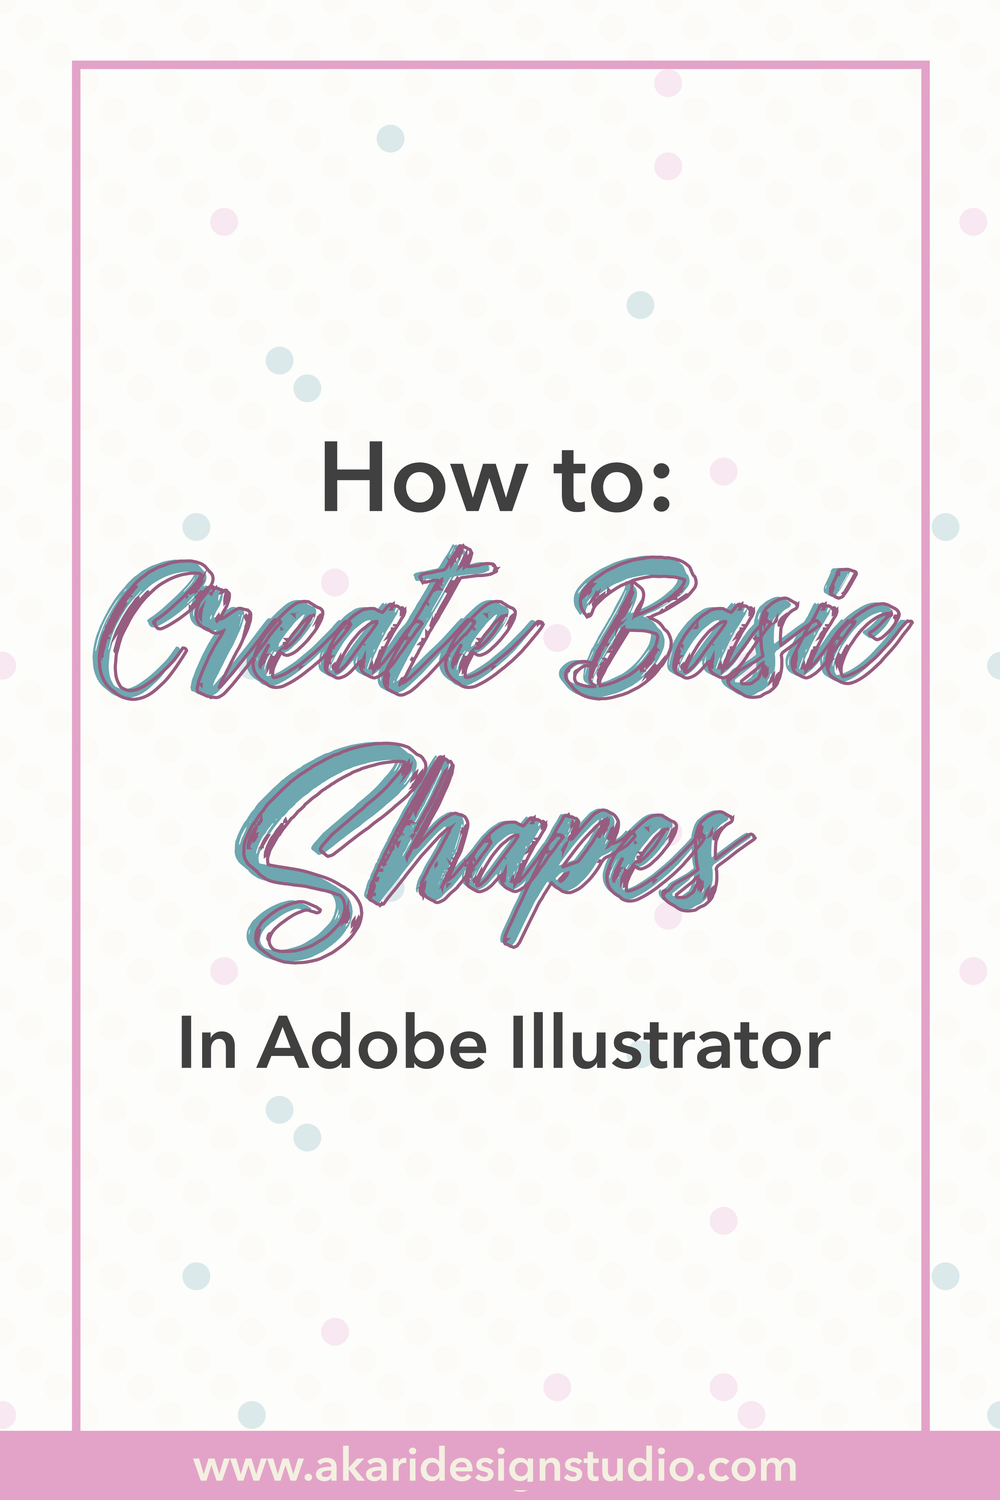 Learn to use Adobe Illustrator for your business. Create shapes in Abode Illustrator. Illustrator basics. Illustrator Tutorials. Introduction to Adobe Illustrator. Learn how to make a 90 degree triangle in Adobe Illustrator. Learn how to make a square in Adobe Illustrator. Learn basic Illustrator functions.